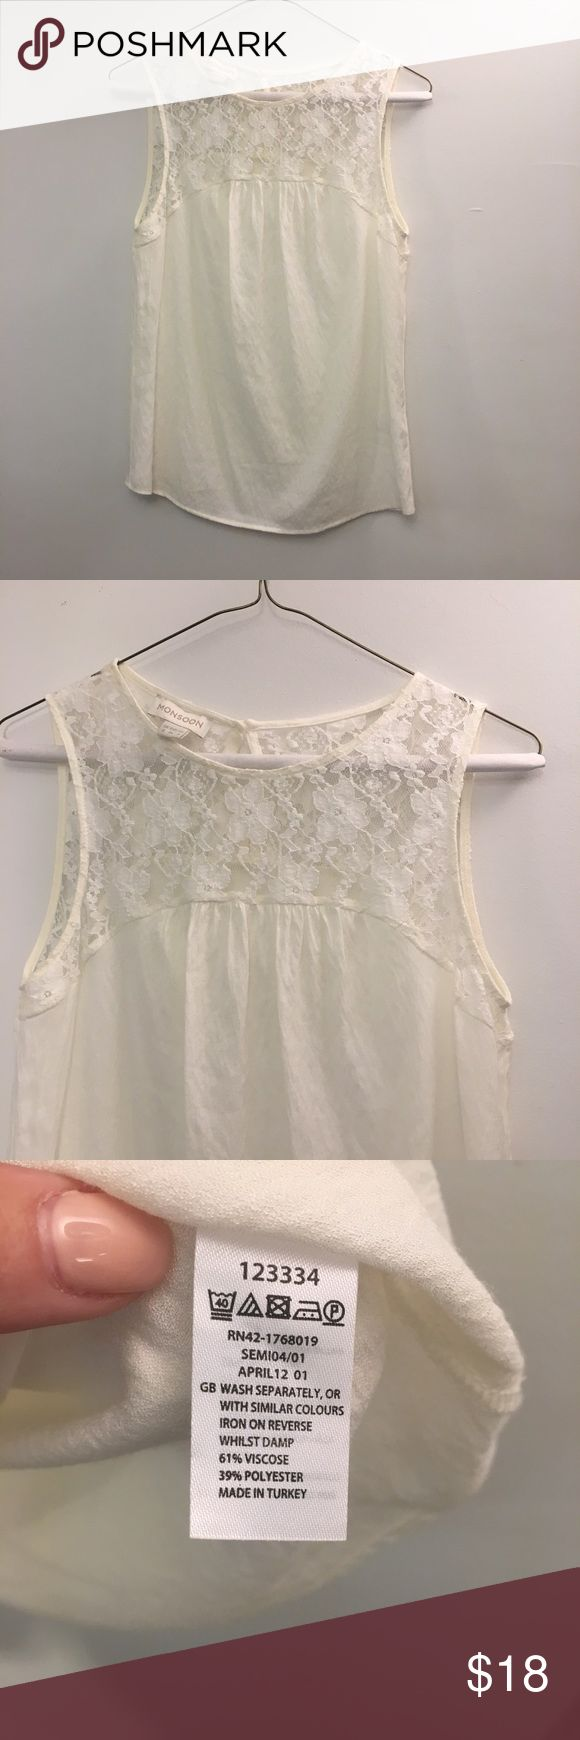 Monsoon cream lace detail top size 4 Beautiful lace upper top from high quality U.K. brand monsoon. Top size 4. Excellent condition. Monsoon Tops Blouses #MonsoonIsHere